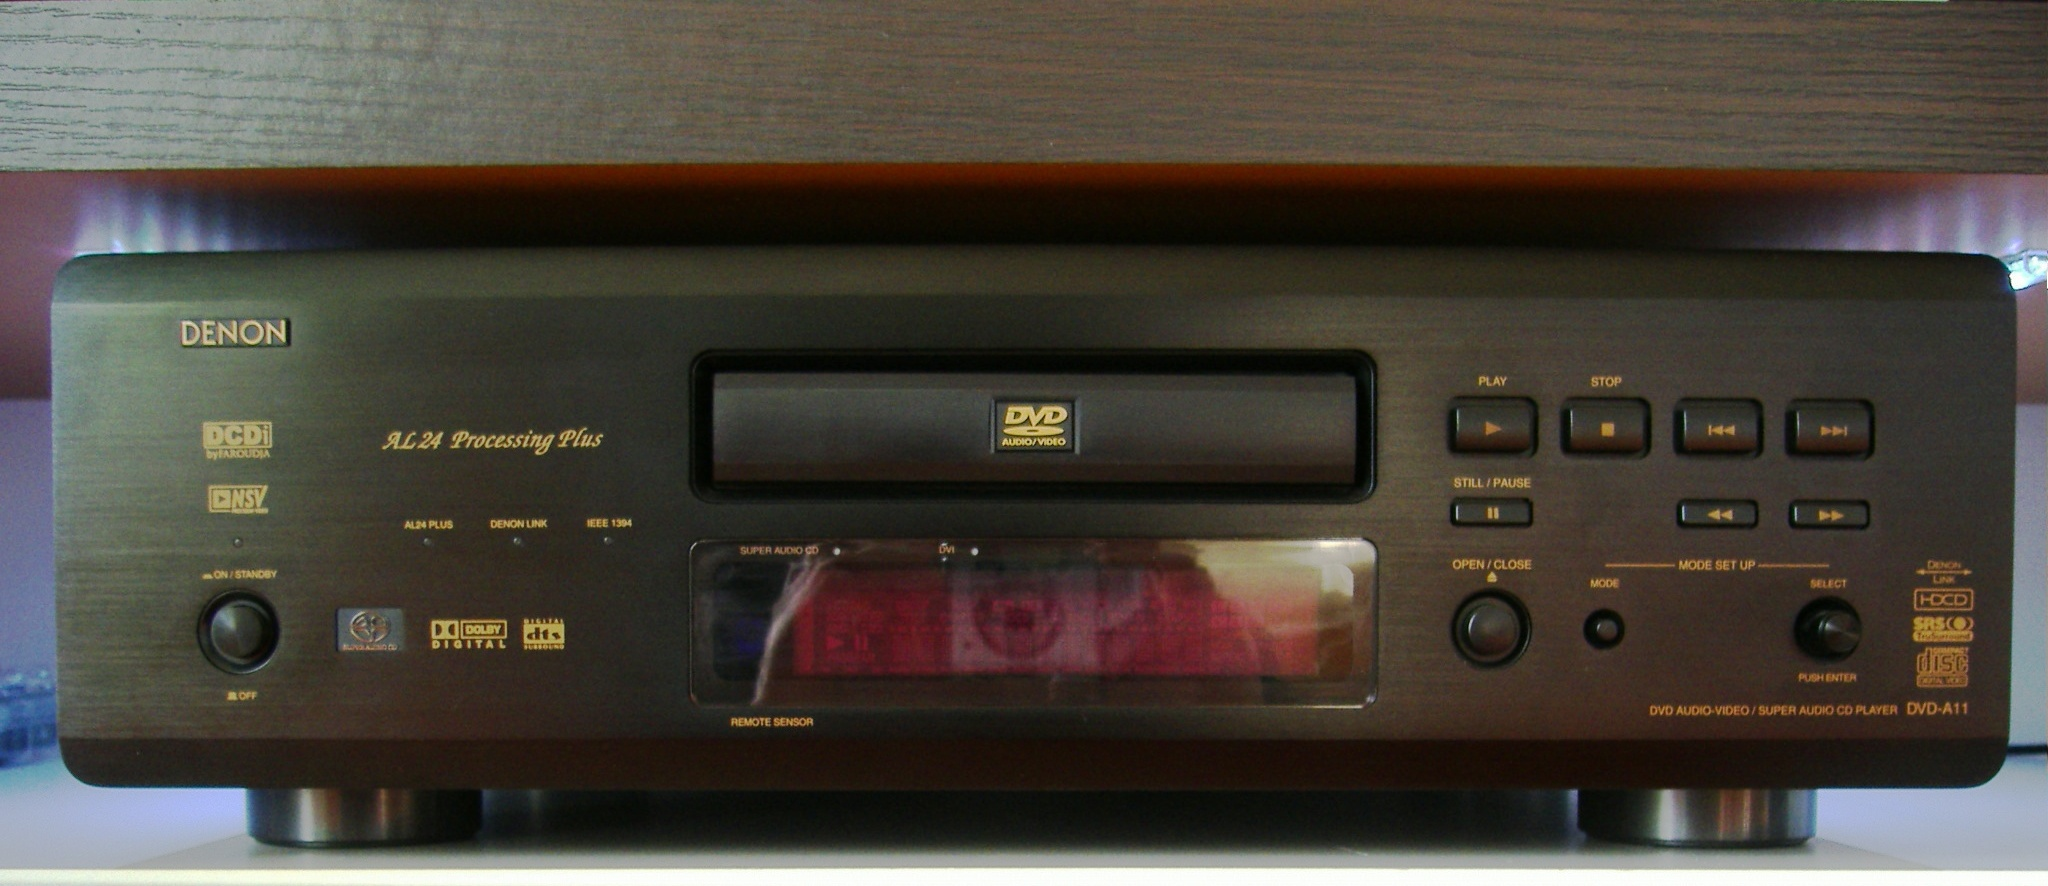 Denon Dvd A11 Second Hand Hifi Second Hand Buy And Sell